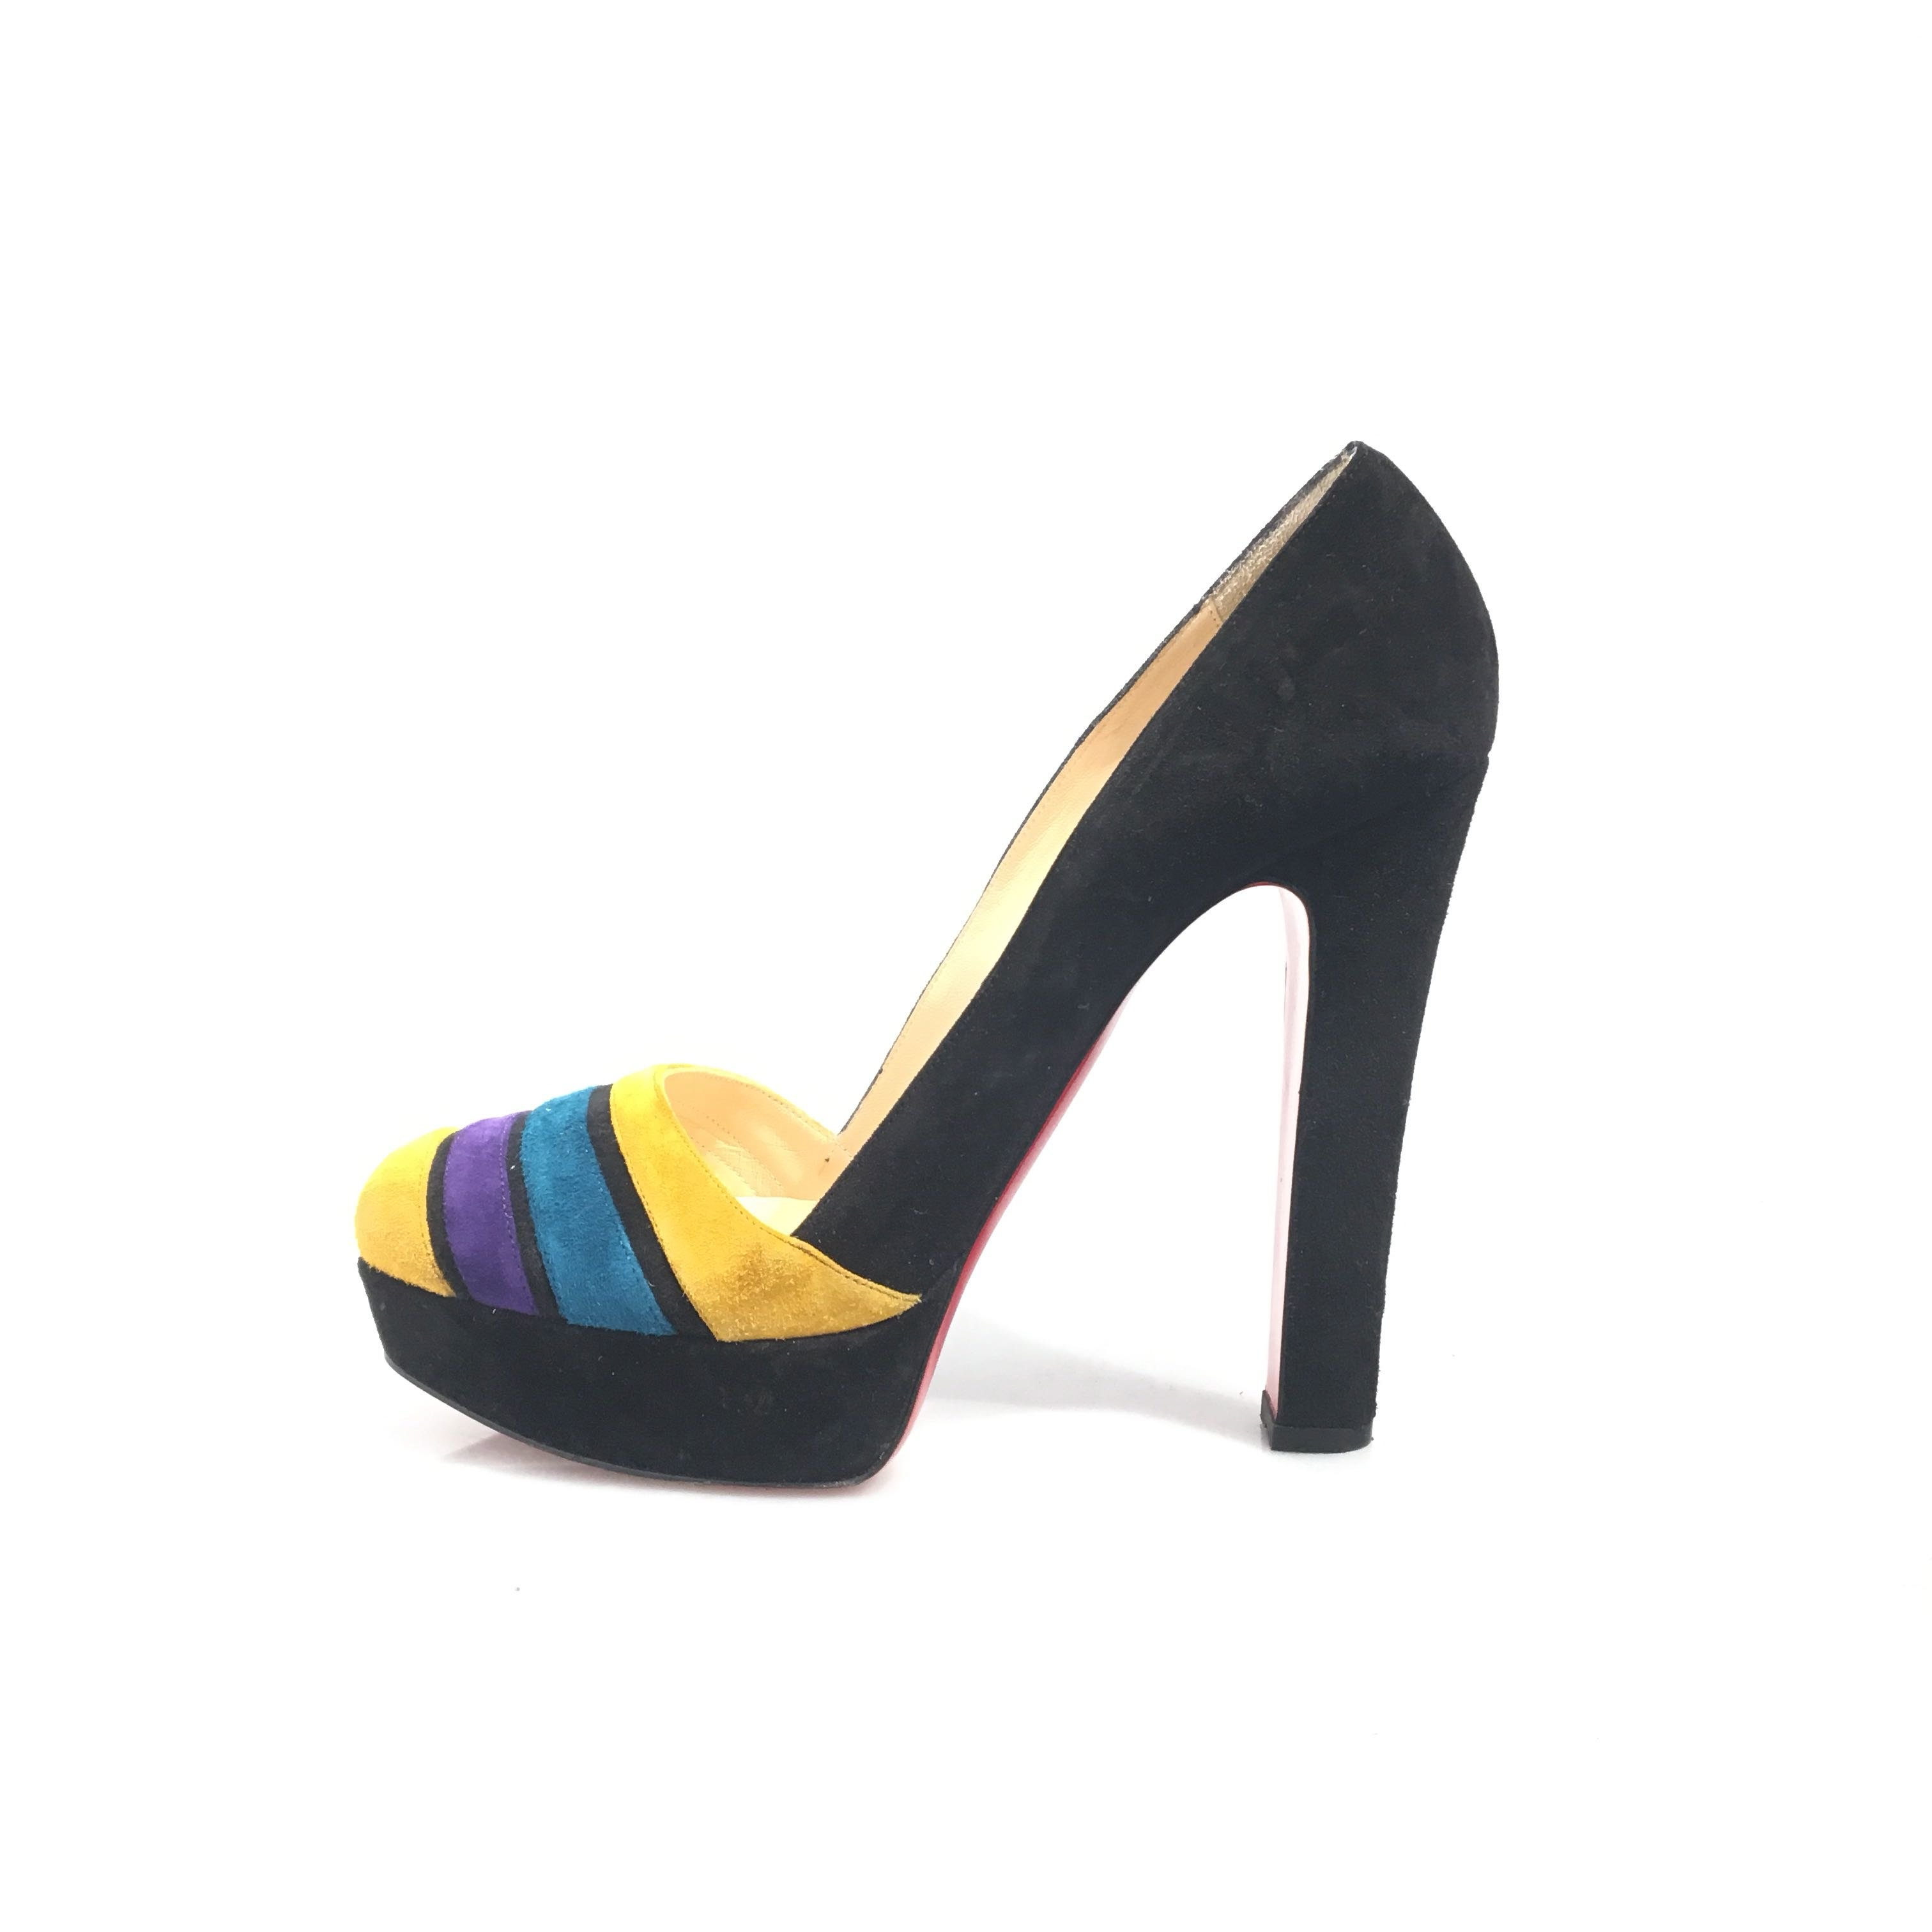 brand new 22341 339ed Details about Pre-Loved Christian Louboutin Black Suede Leather Multi-Color  Pumps Italy